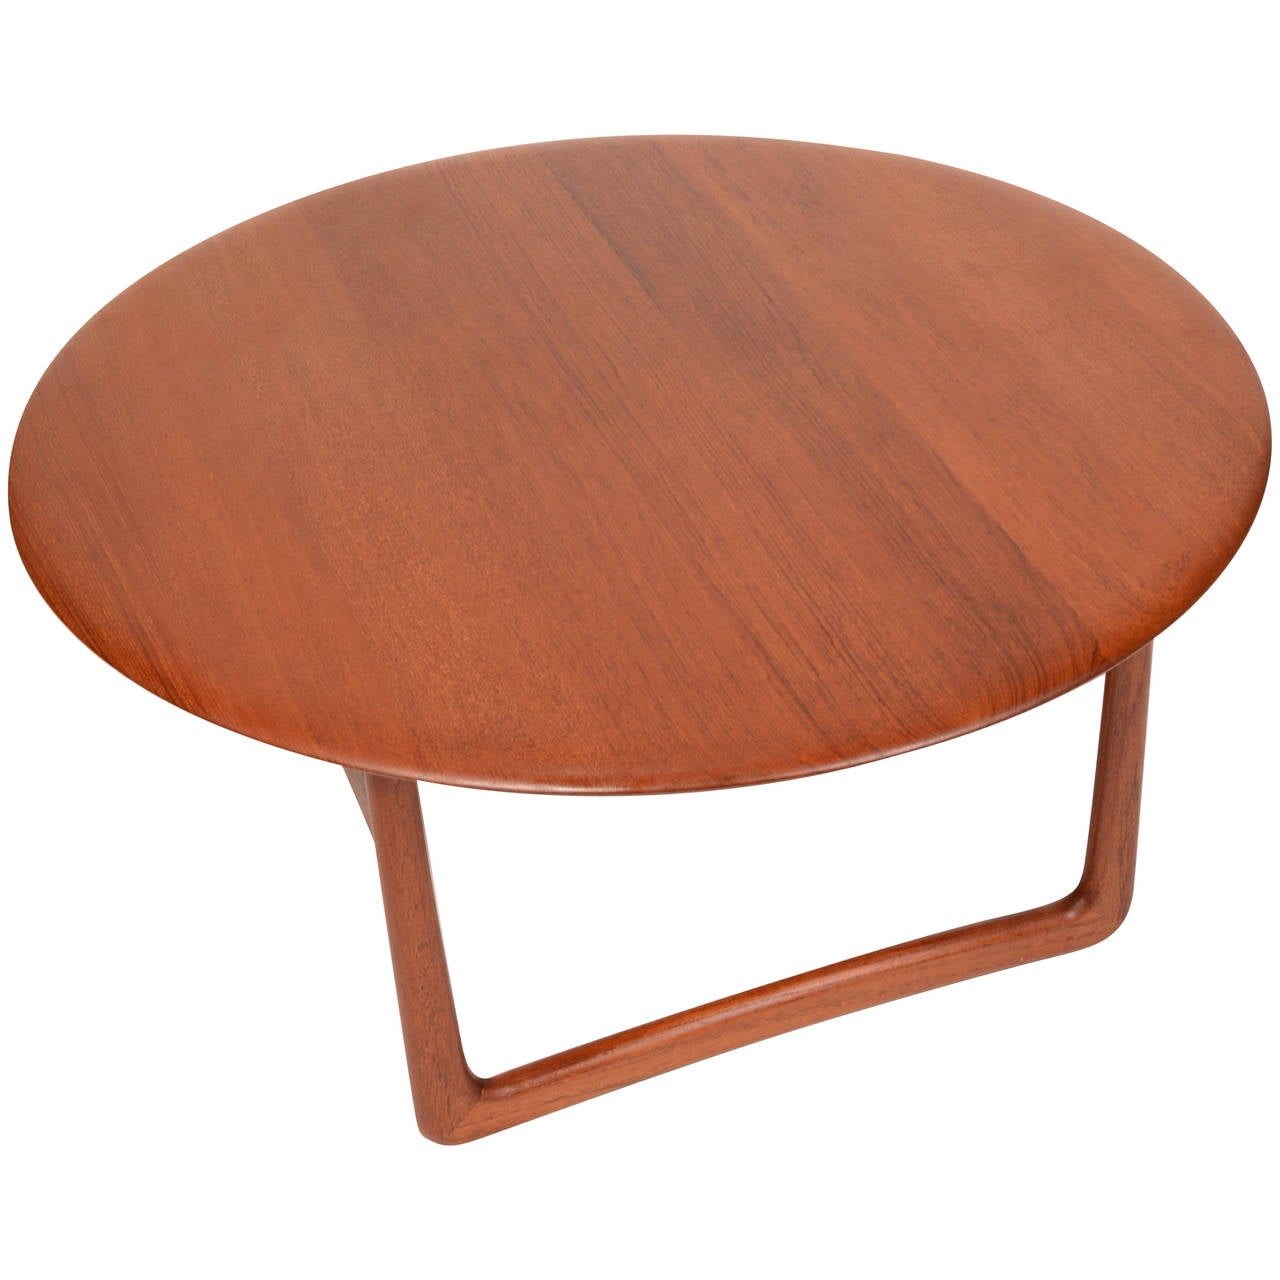 Solid Teak Danish Modern Round Coffee Table By Povl Dinesen For France And S N At 1stdibs